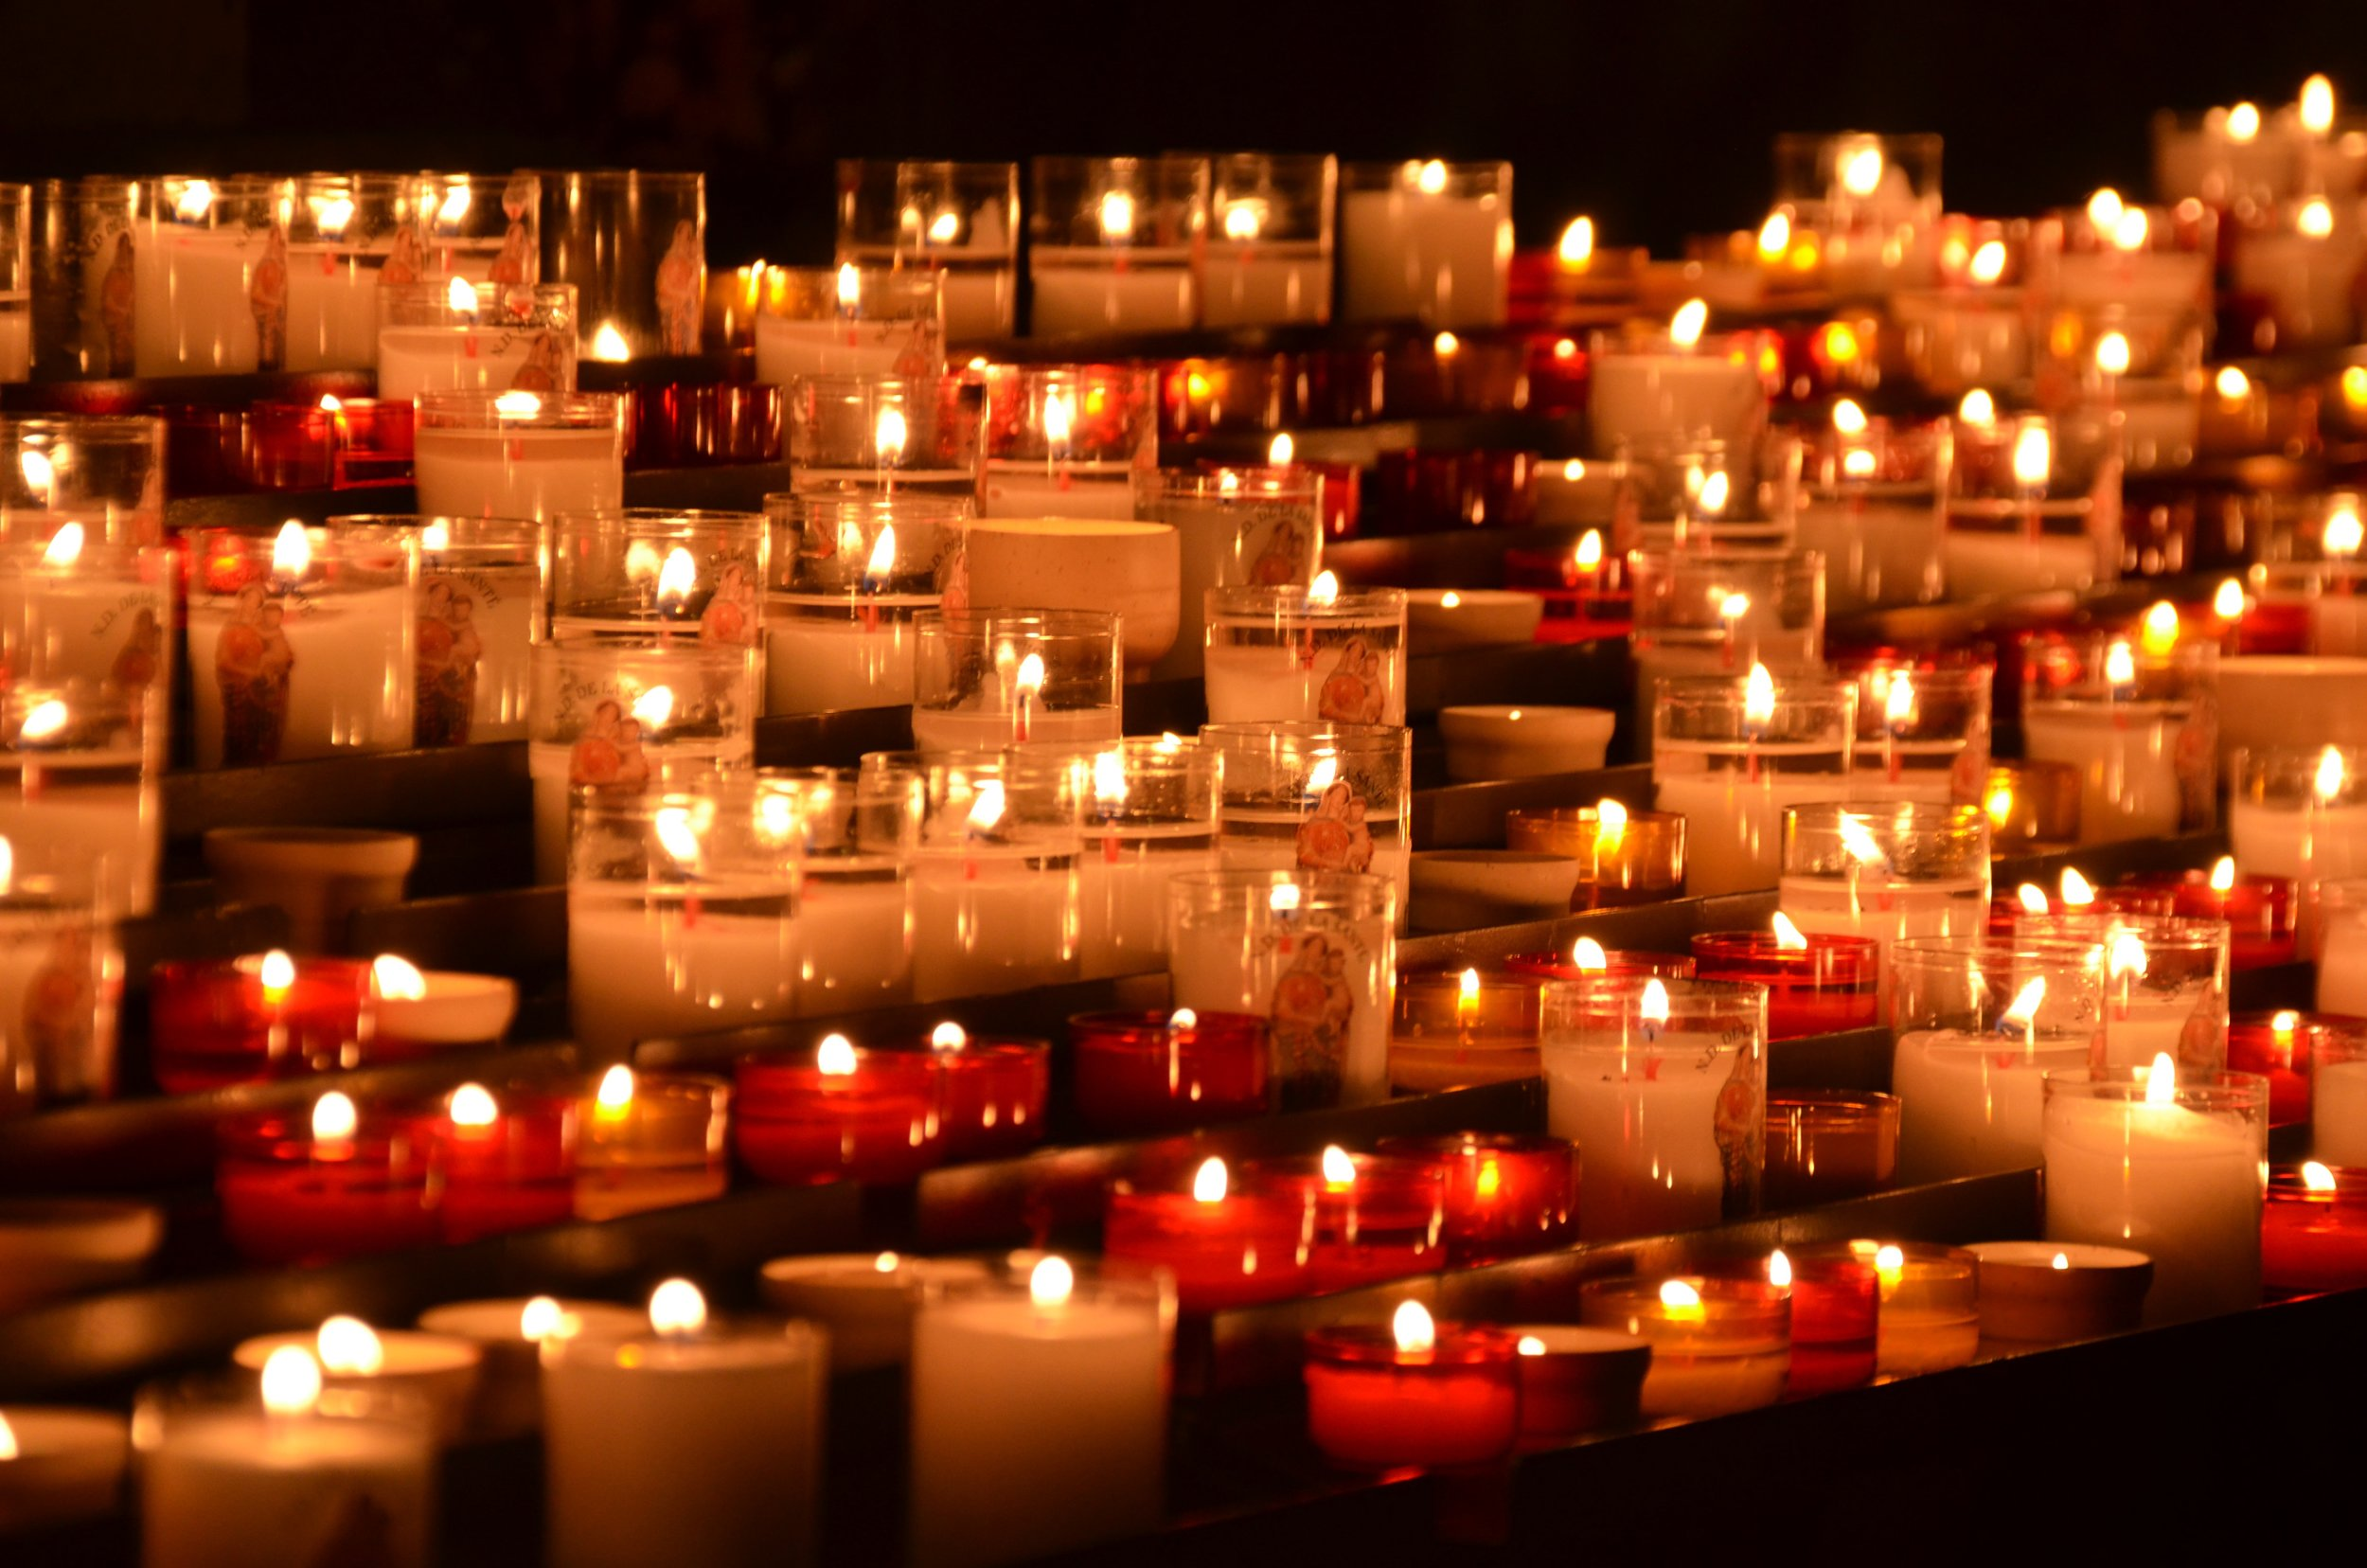 candlelight-candles-chruch-54512.jpg